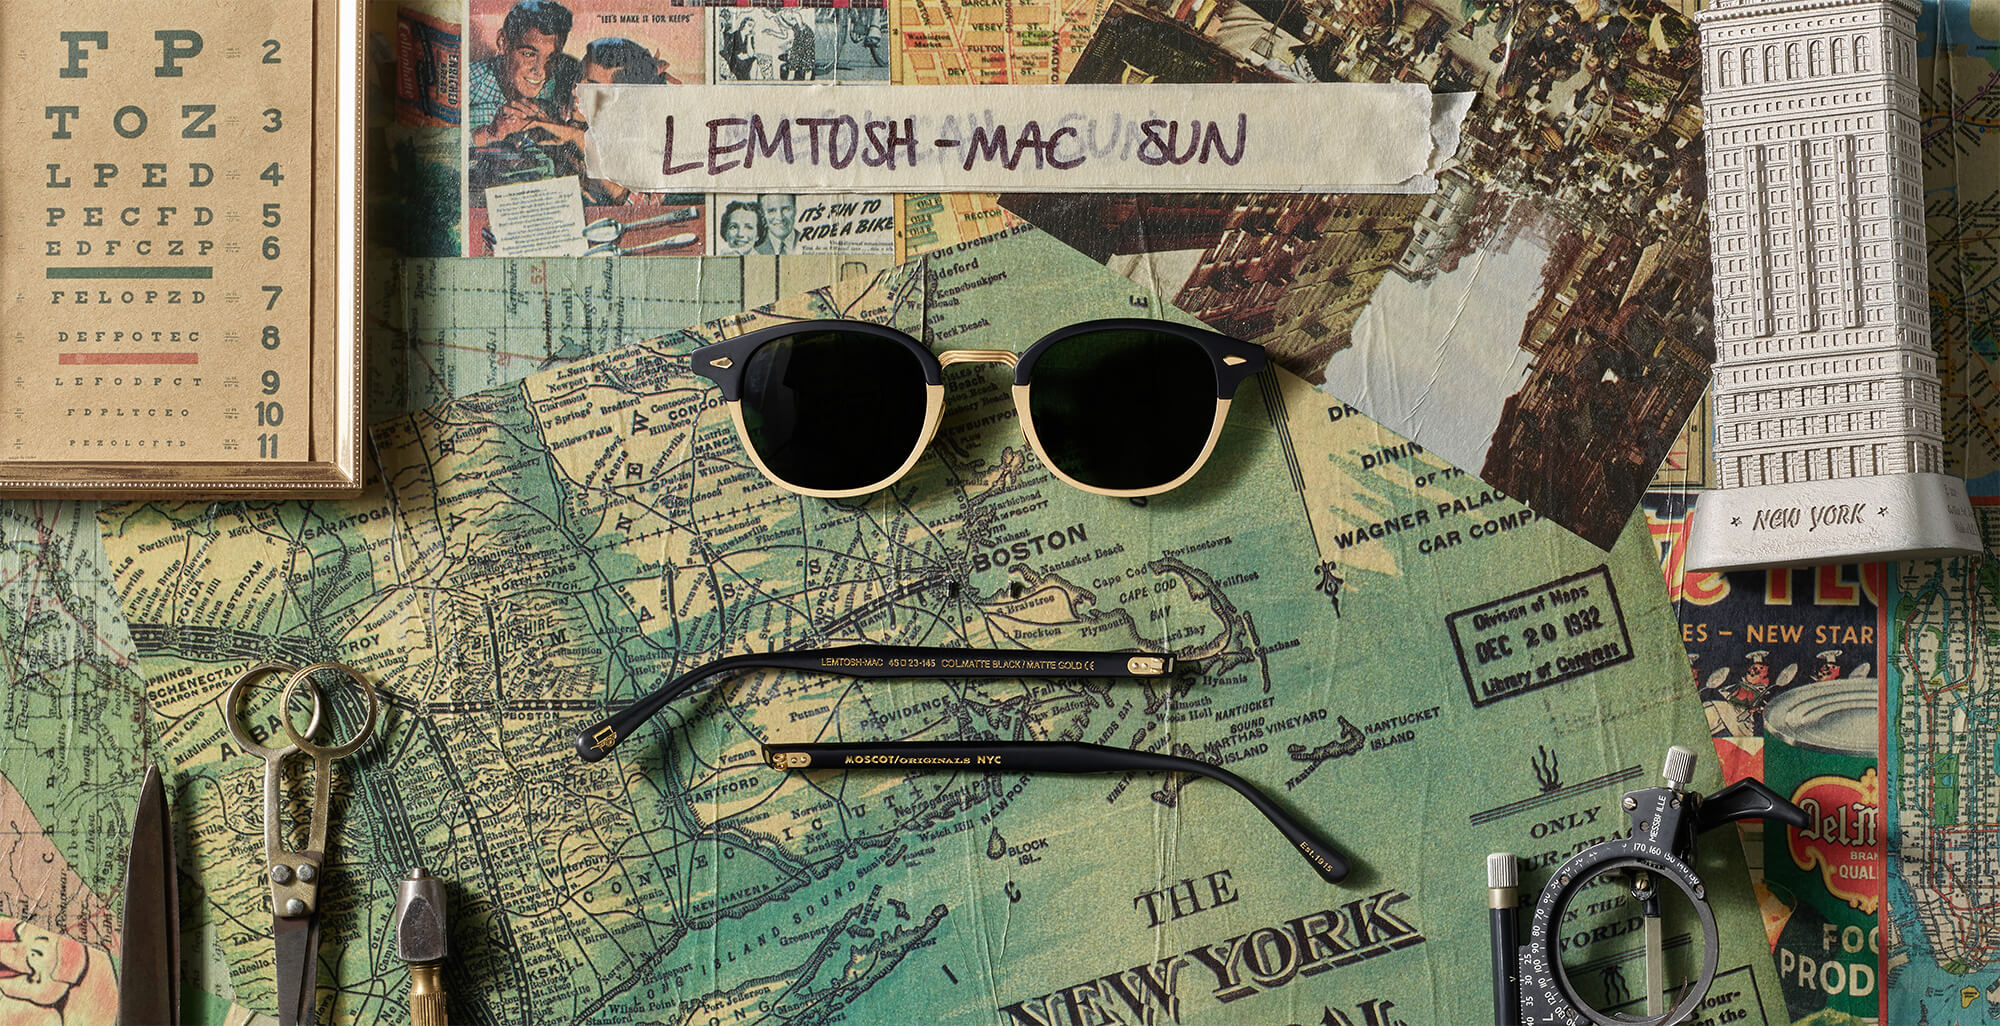 LEMTOSH-MAC SUN